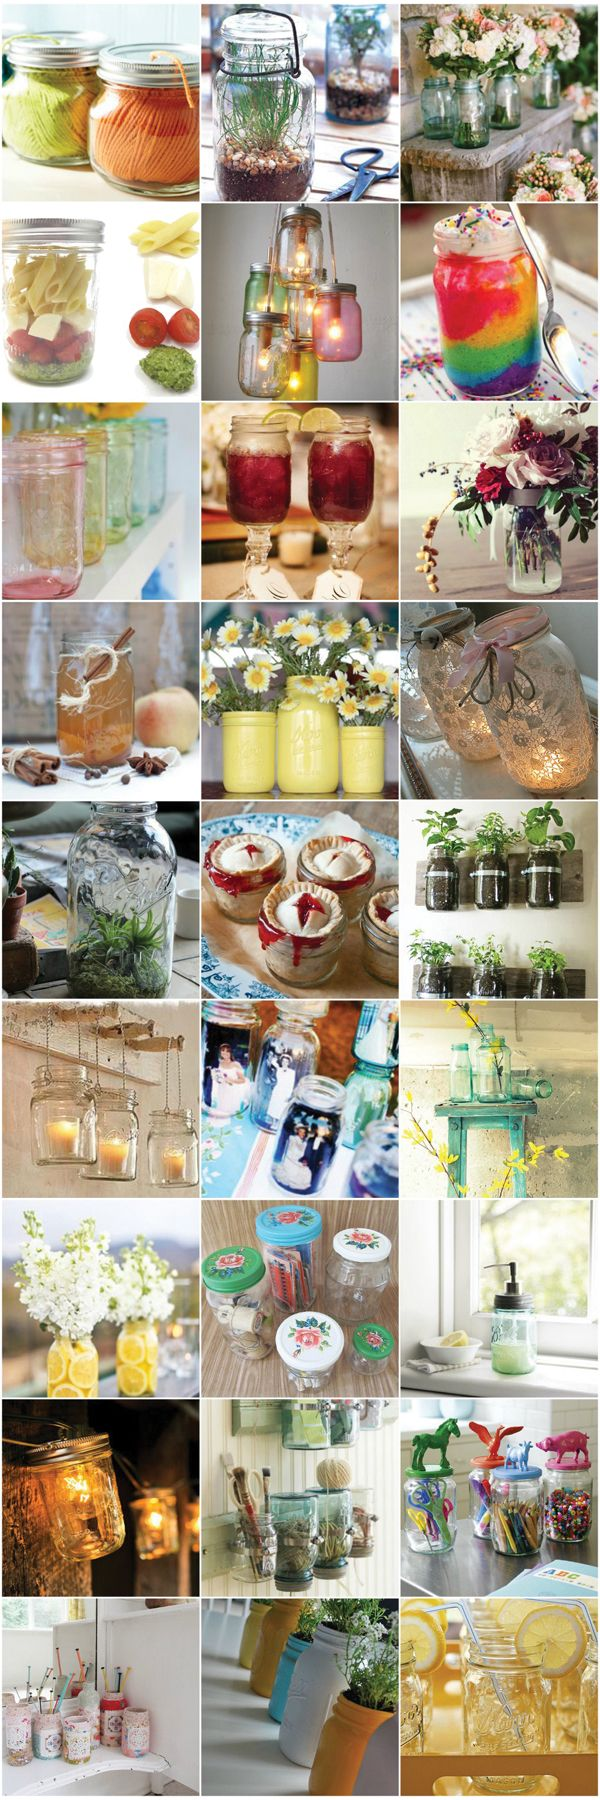 Lots of creative Ideas to use Glass Jars!